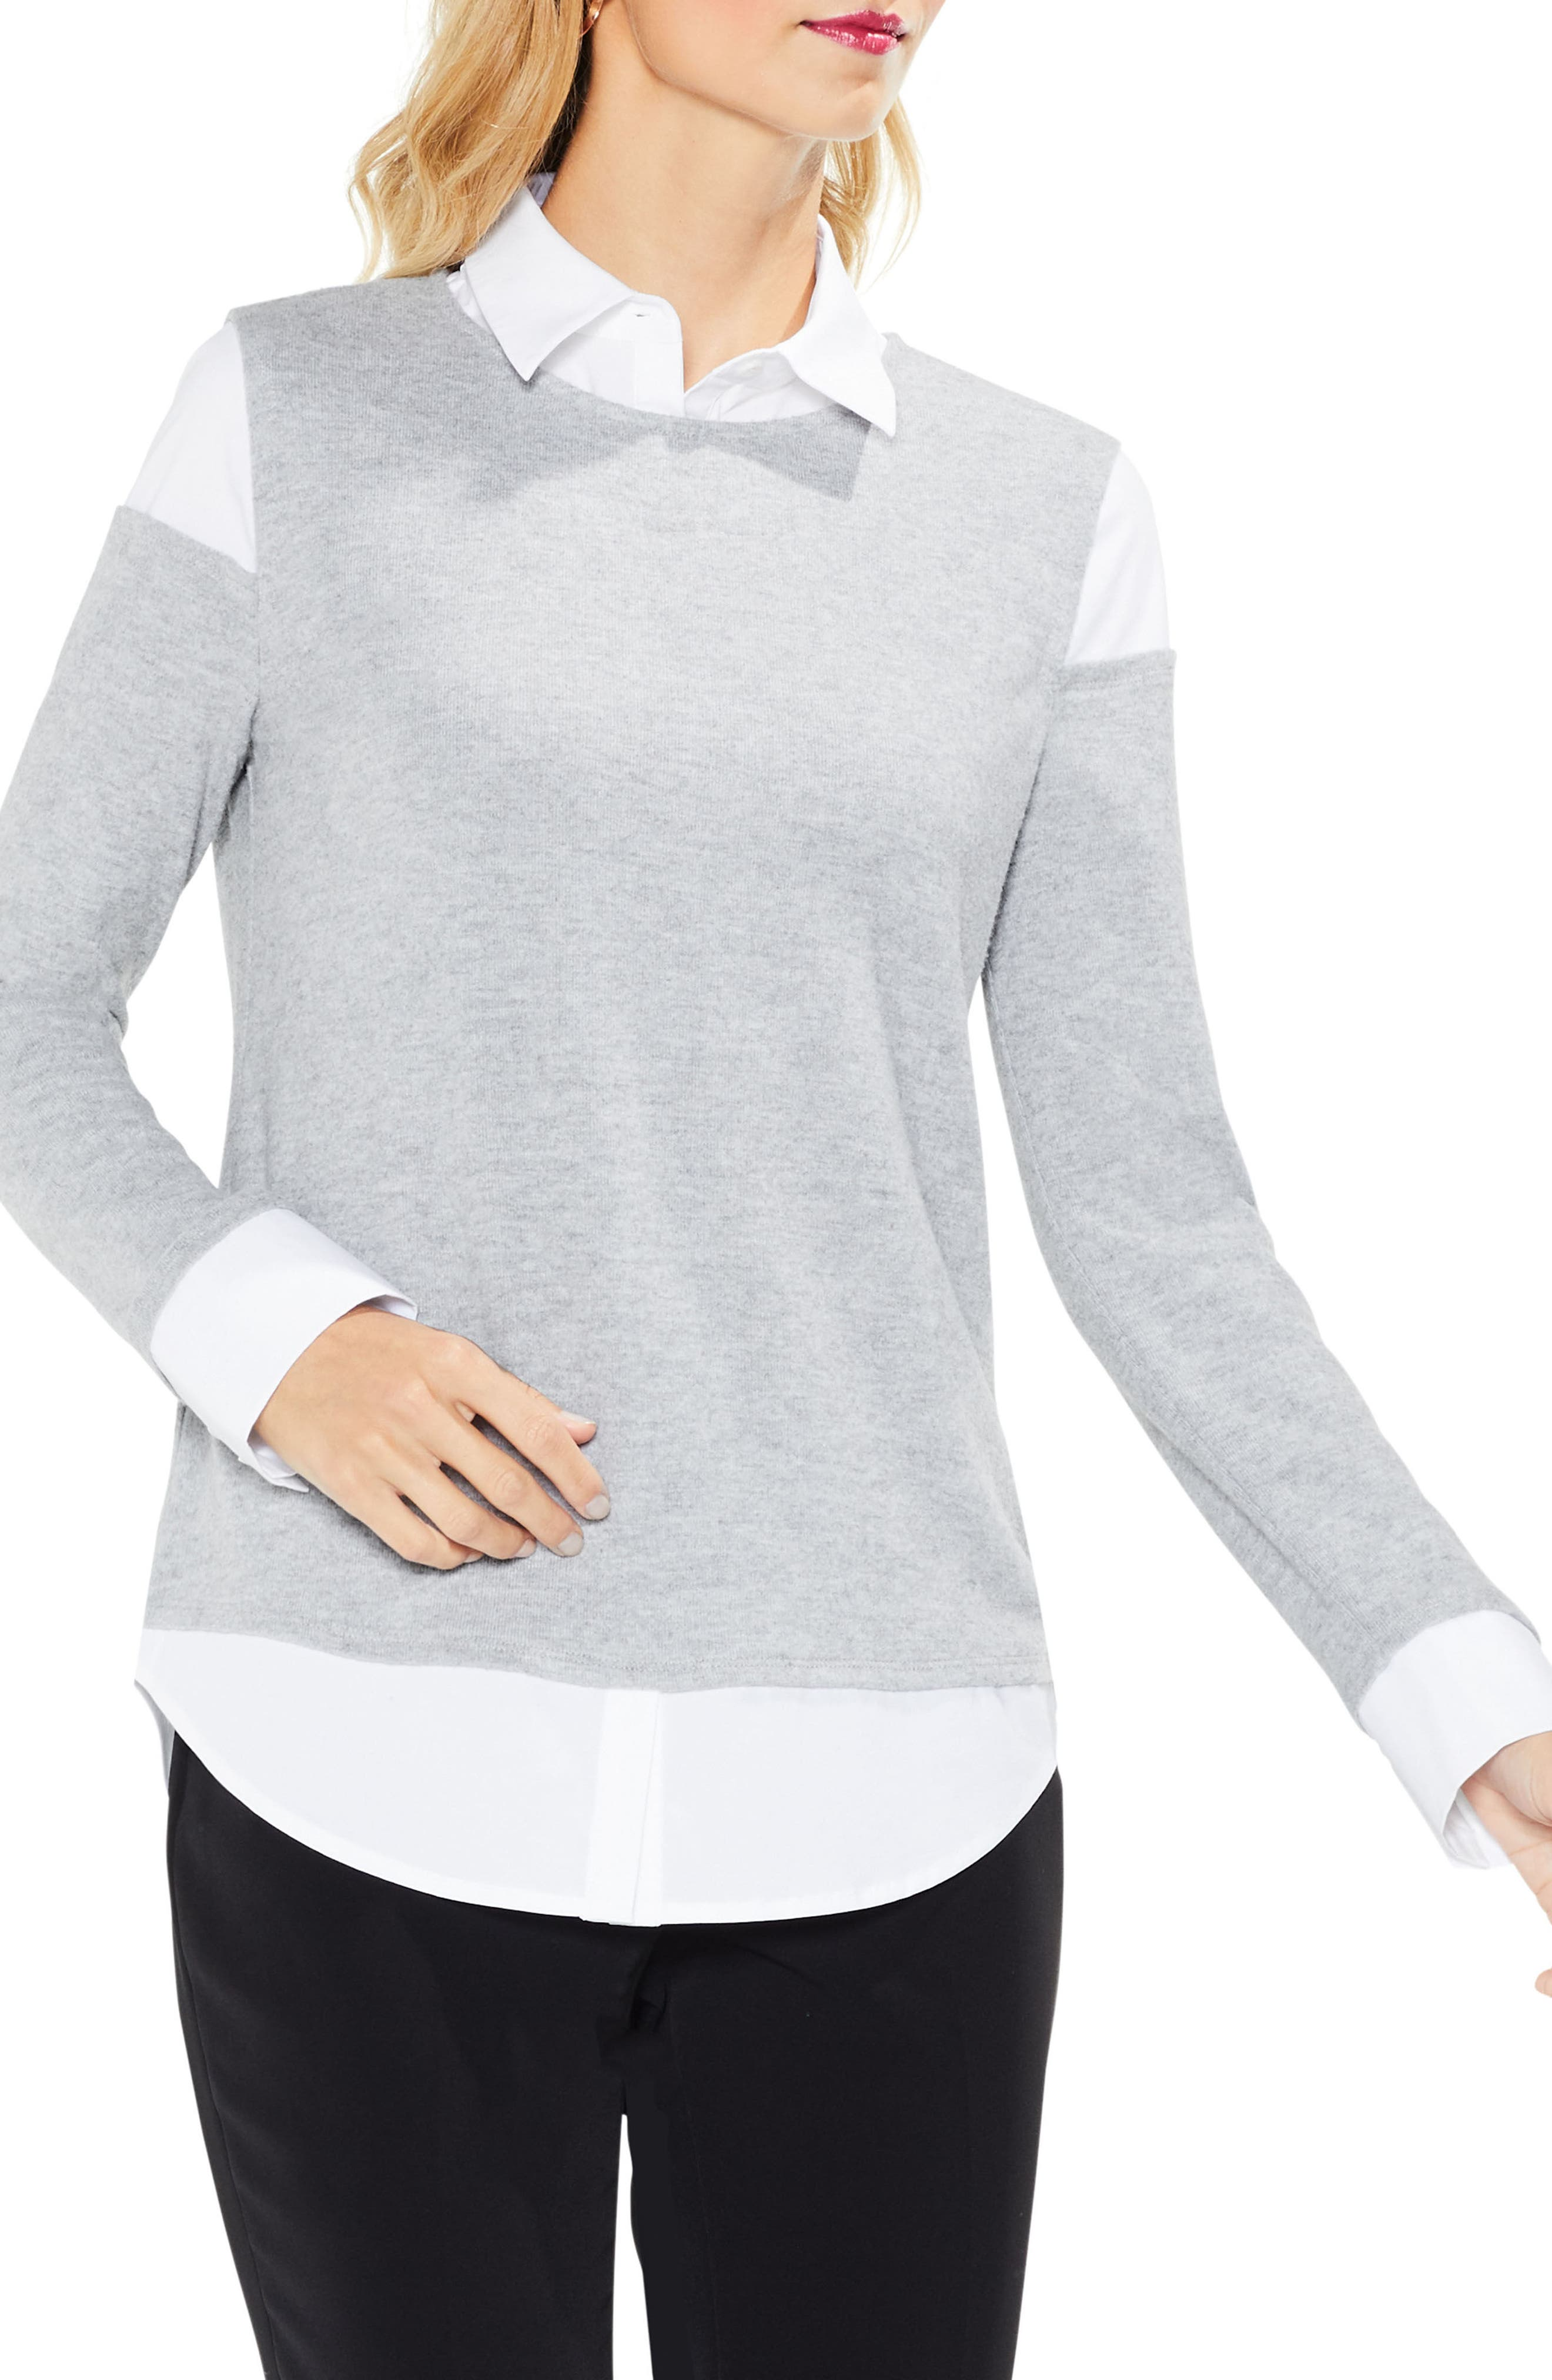 Main Image - Vince Camuto Mix Media Brushed Jersey Top